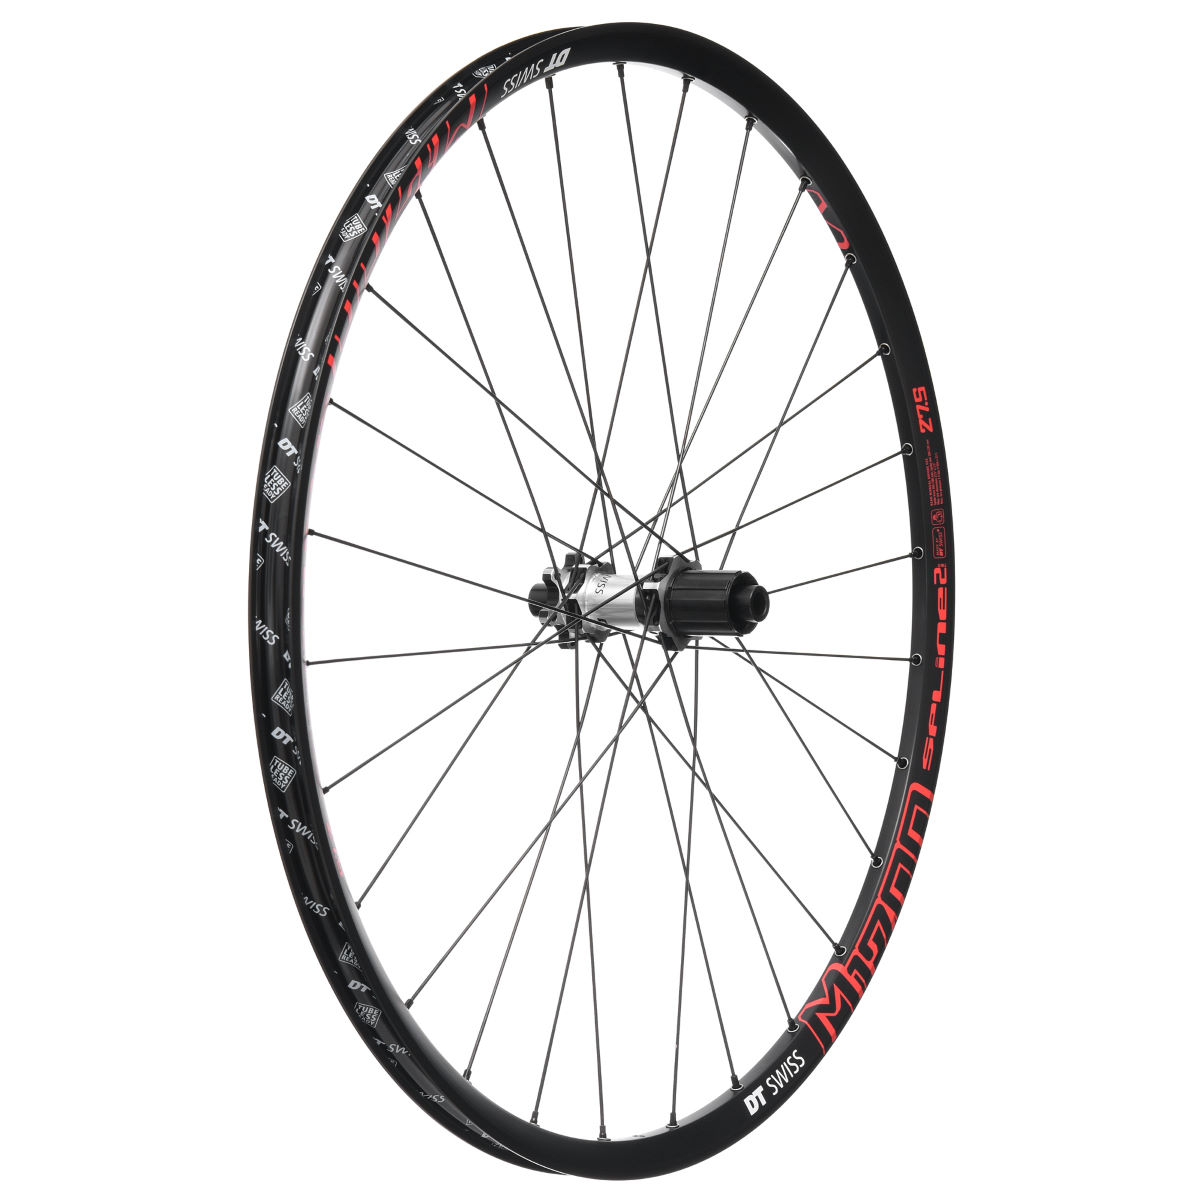 DT Swiss Spline M1700 MTB Rear Wheel - Ruedas traseras